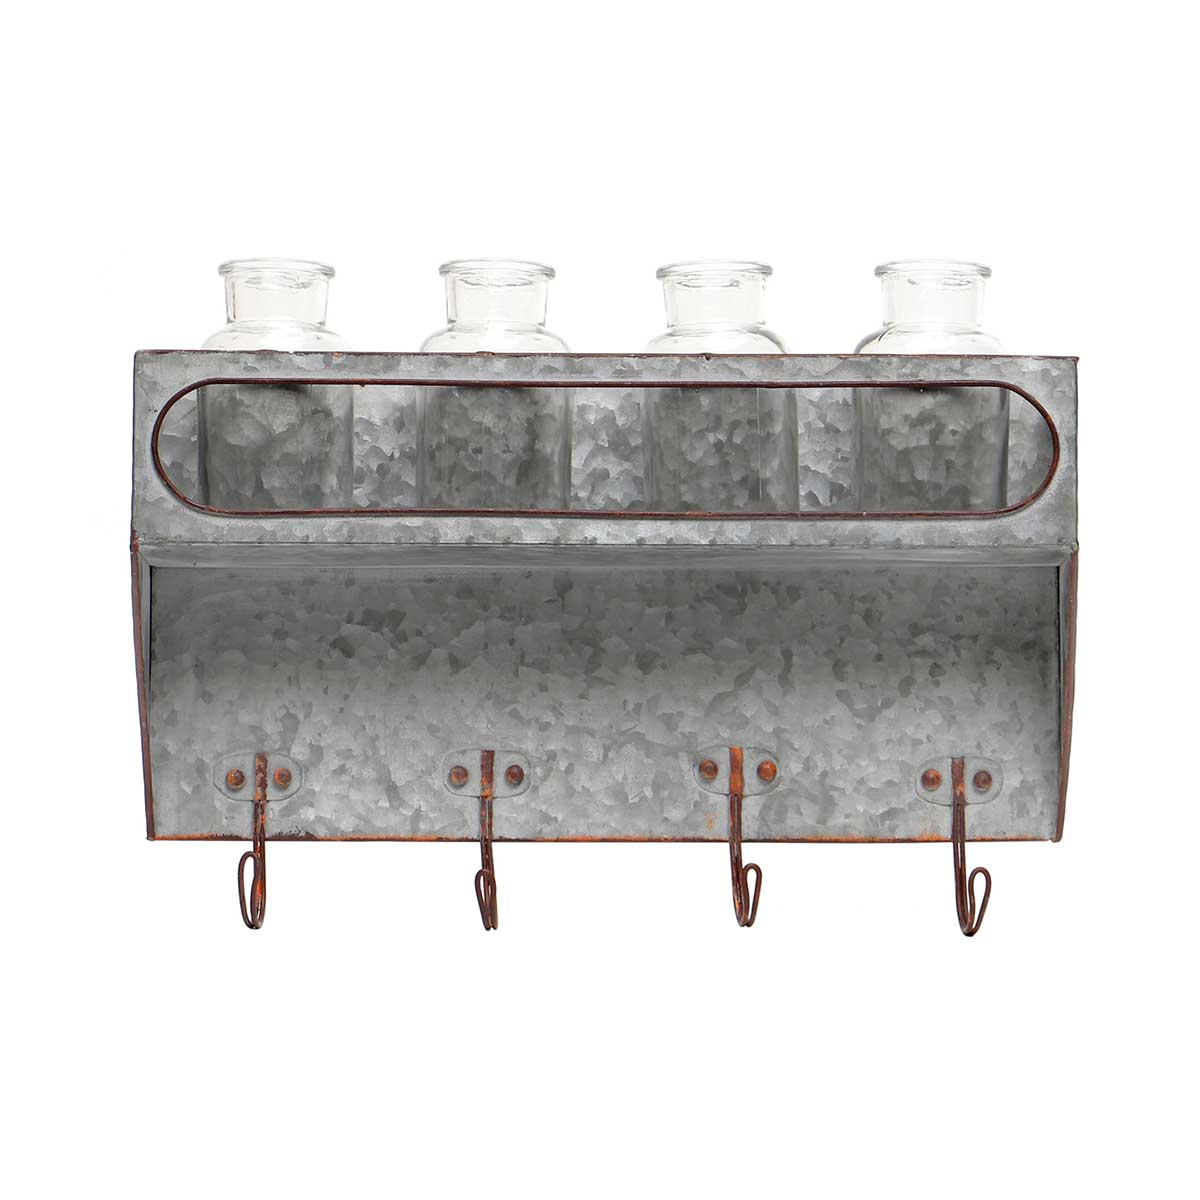 "METAL WALL PIECE WITH 4 GLASS BOTTLES AND HOOKS 15.5""x3.5""x11"""